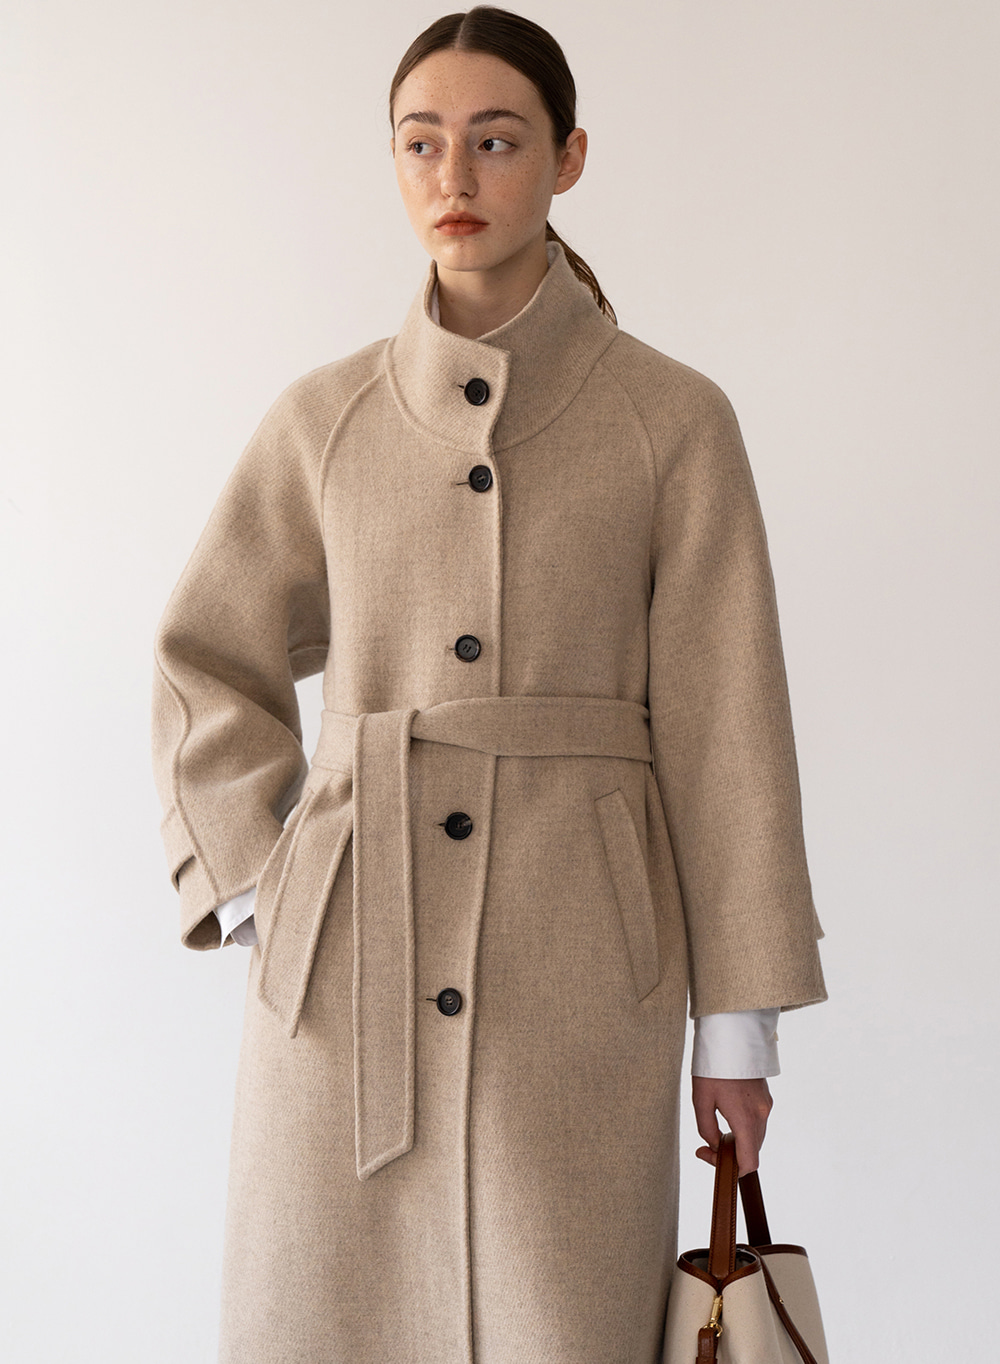 [FW20 ESSENTIAL] High Neck Handmade Coat Taupe-melange